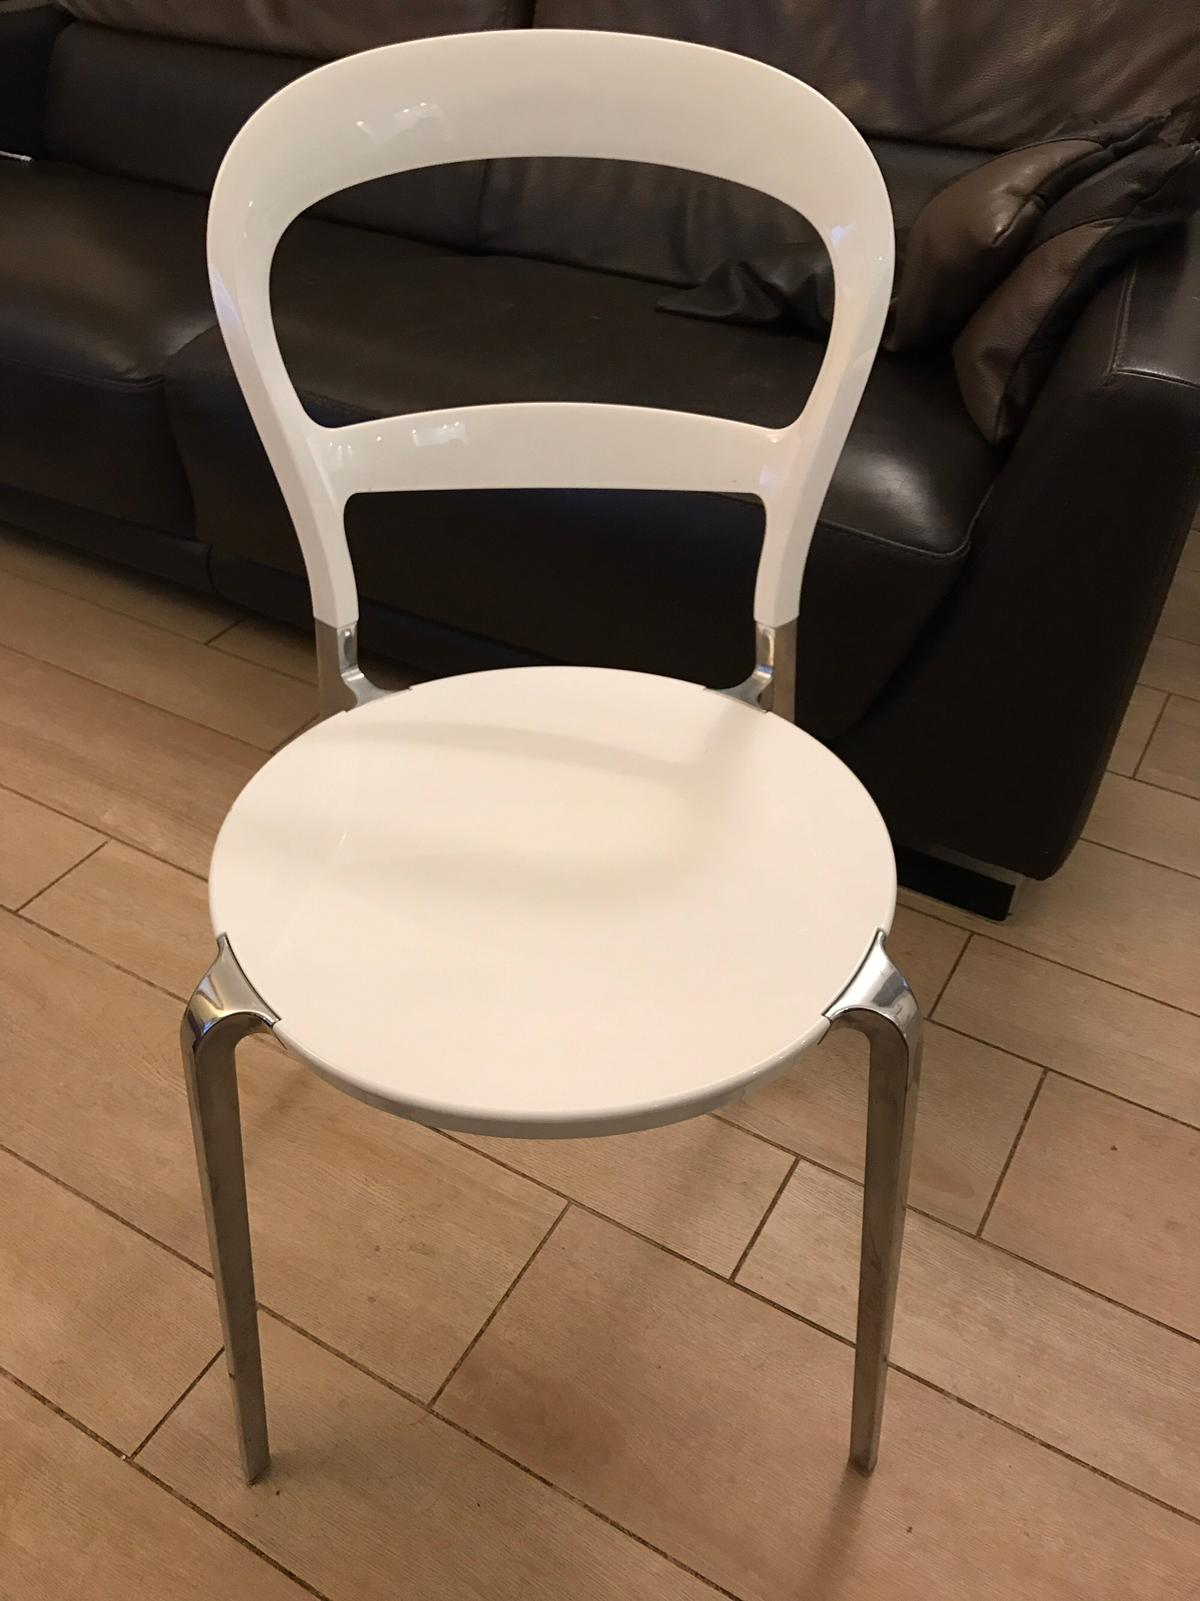 Sedie Calligaris wien in 20020 Lainate for €200.00 for sale - Shpock